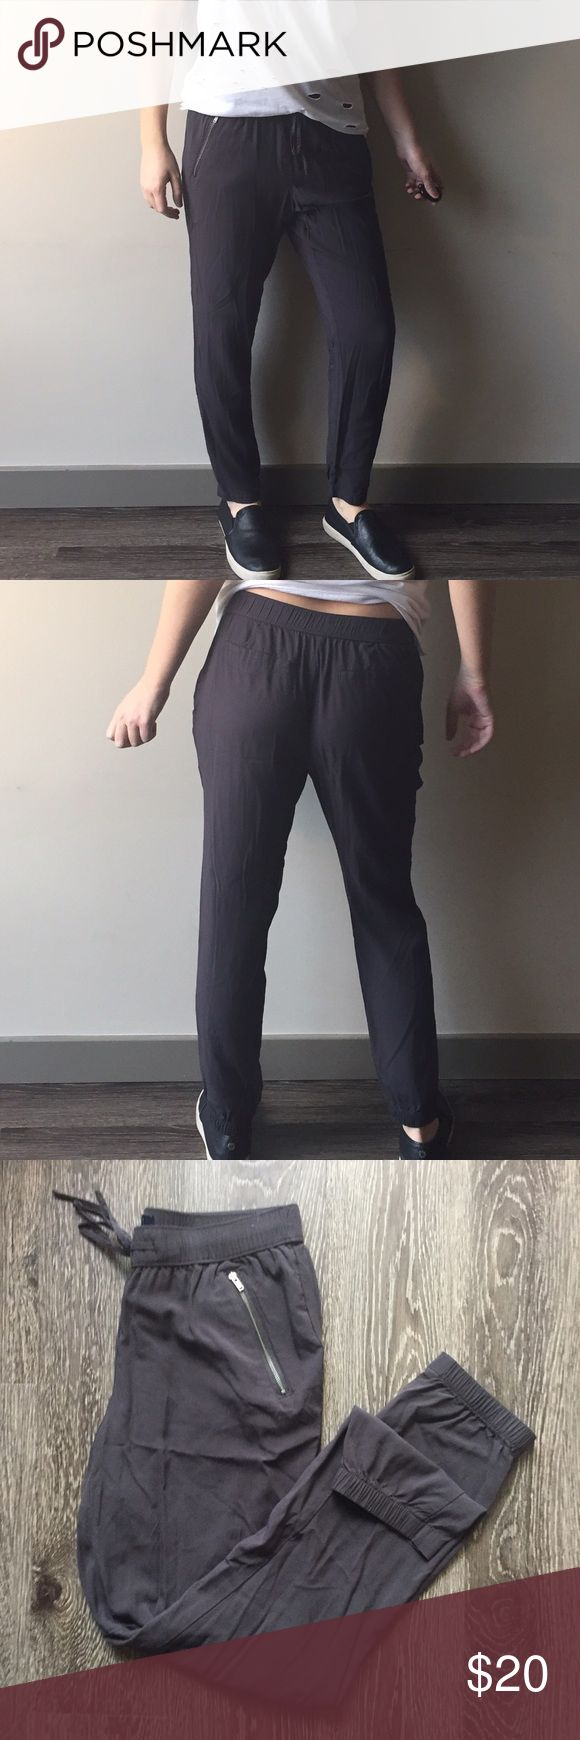 GAP charcoal joggers Lightweight and breezy joggers purchased from the GAP outlet. Like new condition. GAP Pants Track Pants & Joggers